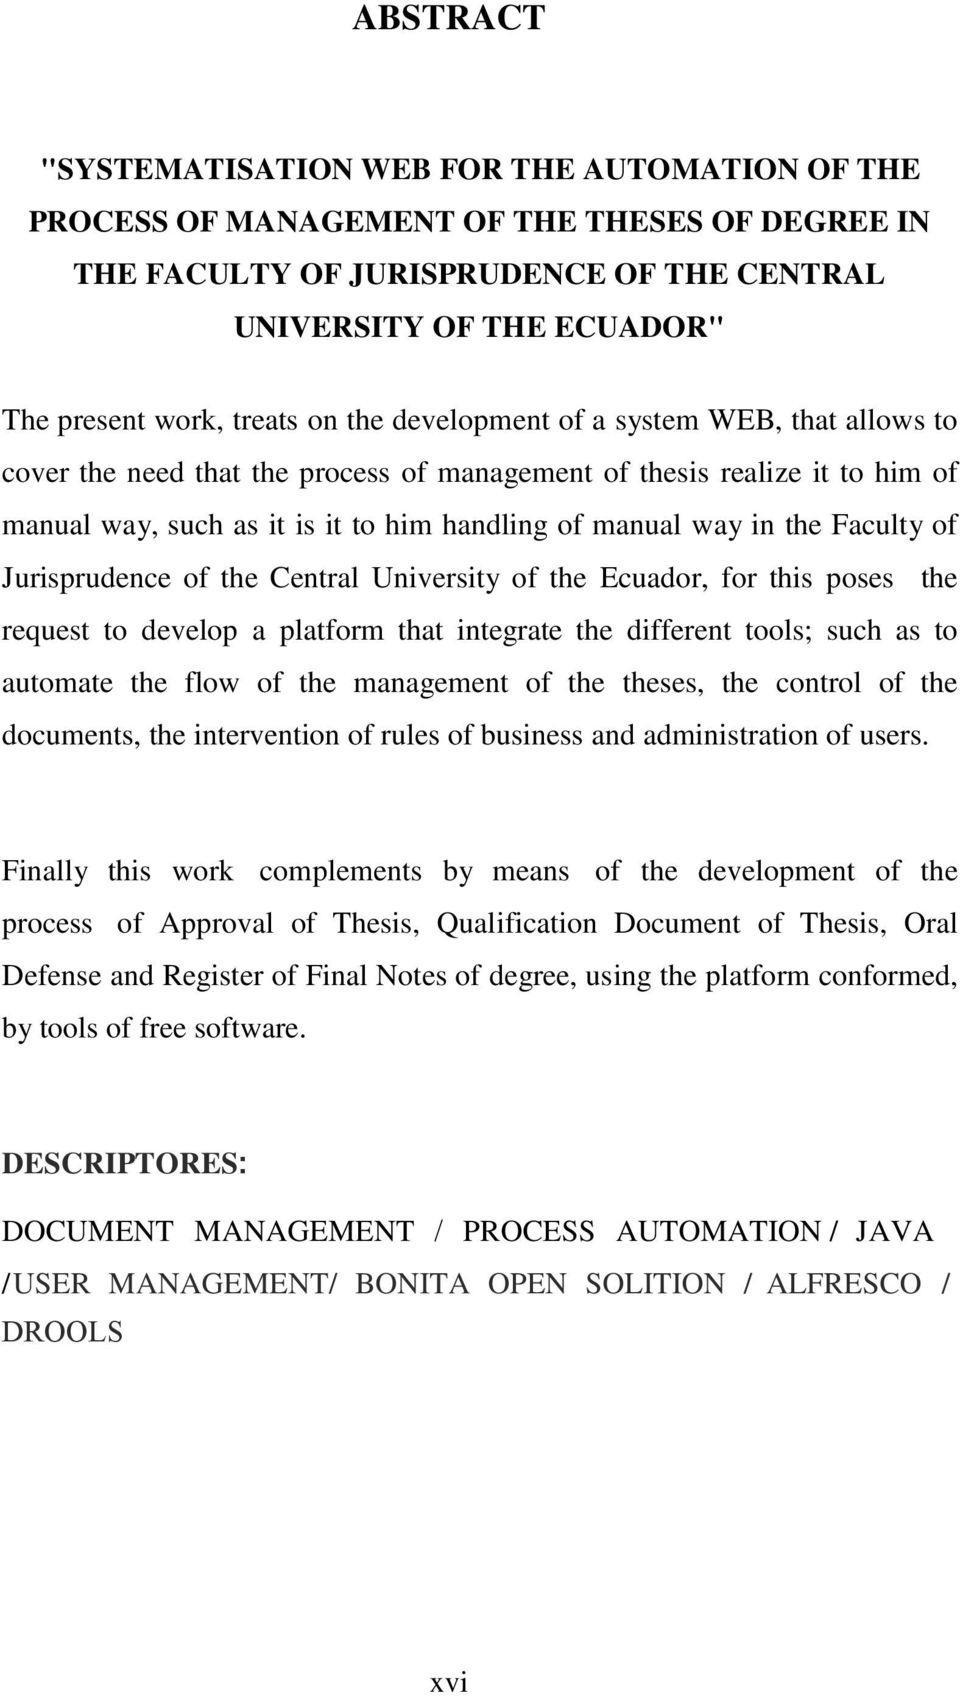 the Faculty of Jurisprudence of the Central University of the Ecuador, for this poses the request to develop a platform that integrate the different tools; such as to automate the flow of the